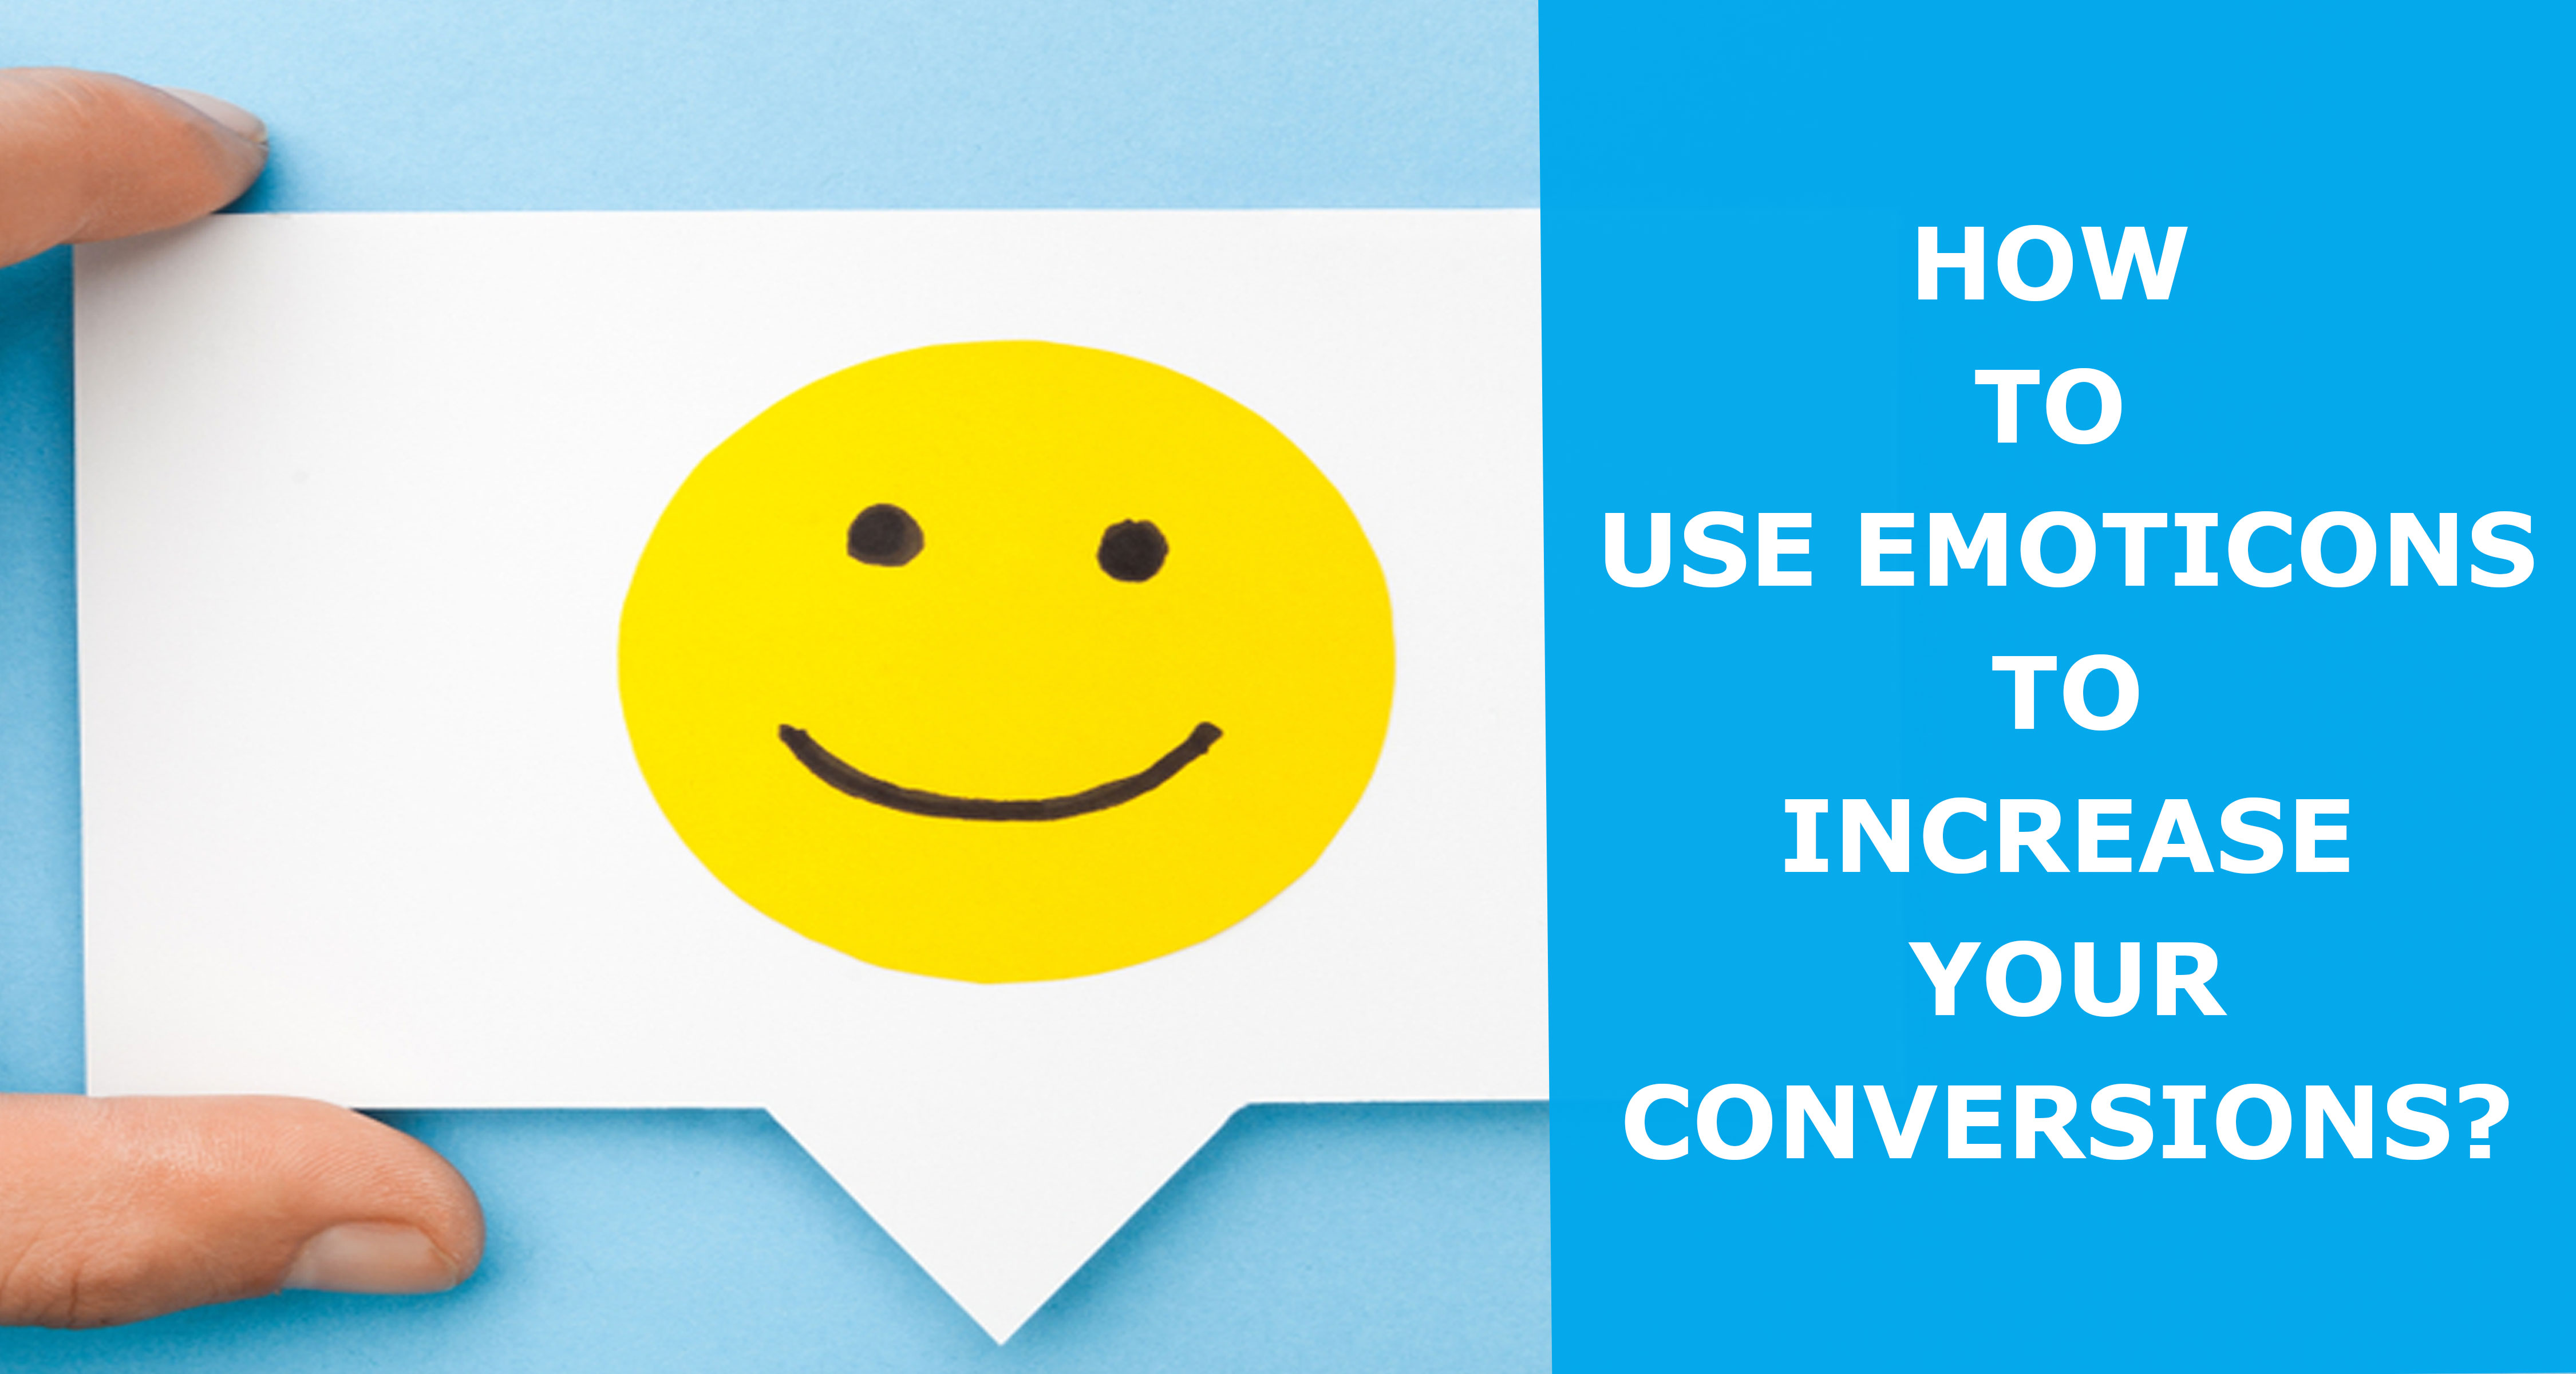 How-To-Use-Emoticons-To-Significantly-Increase-Your-Conversions